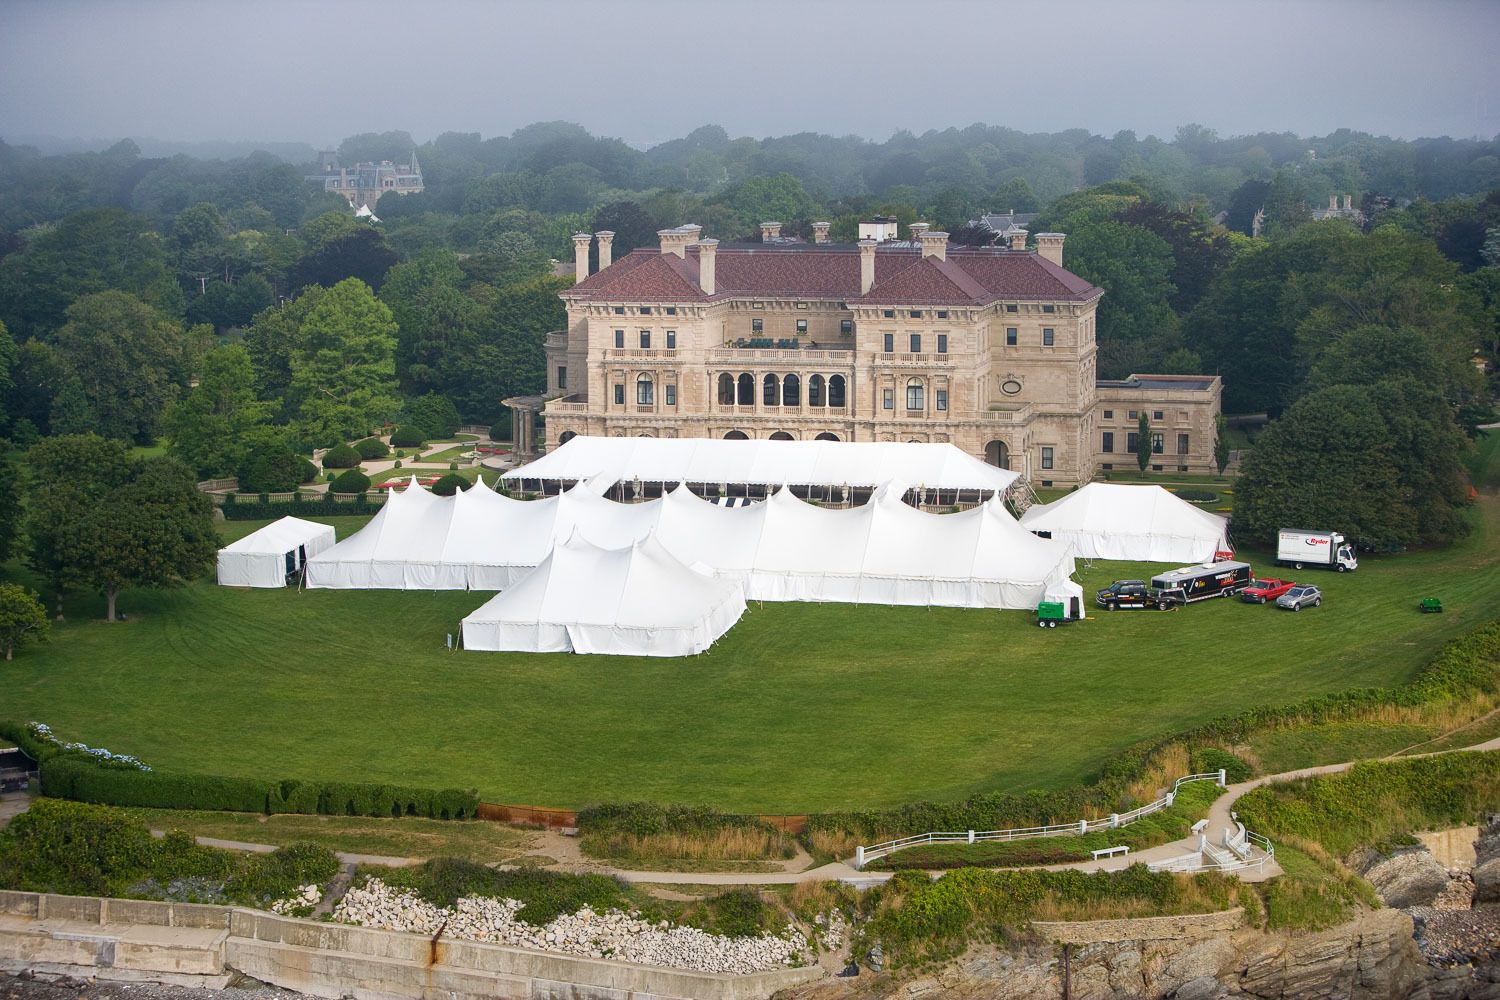 Tents for the Concous d'´Elegance on The Breakers lawn